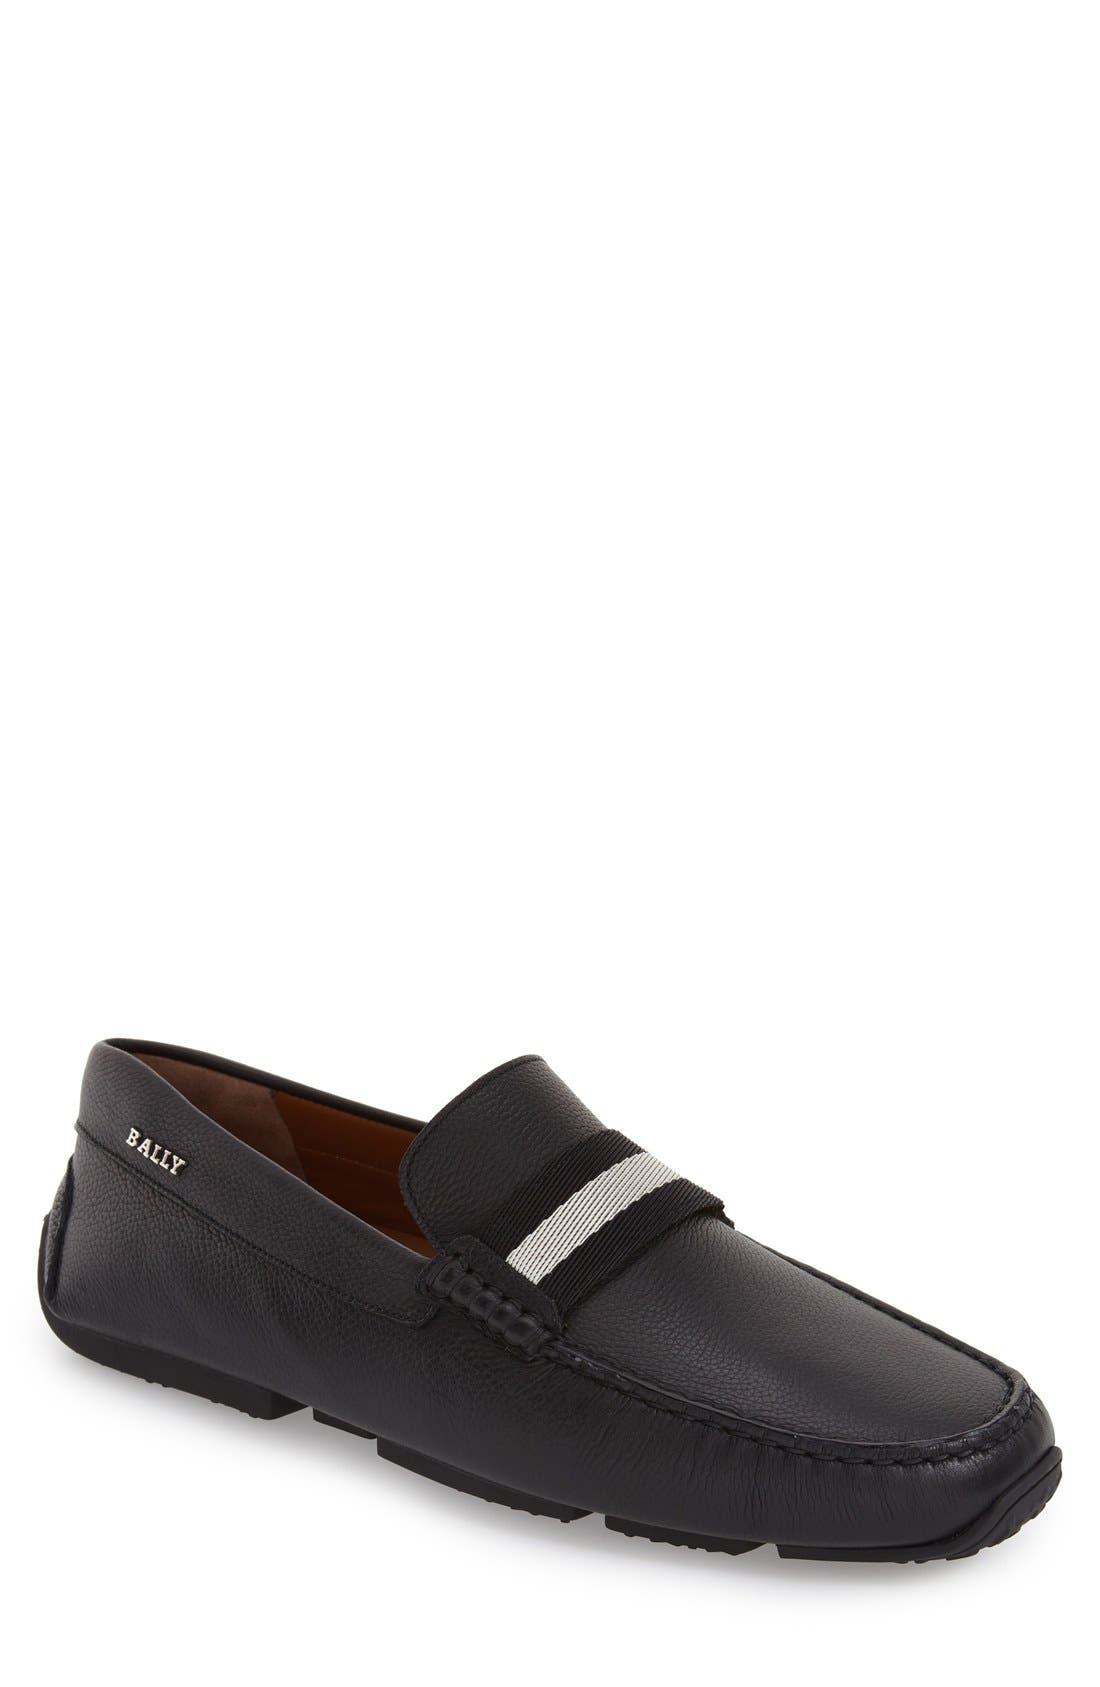 'Pearce' Driving Shoe,                         Main,                         color, BLACK LEATHER